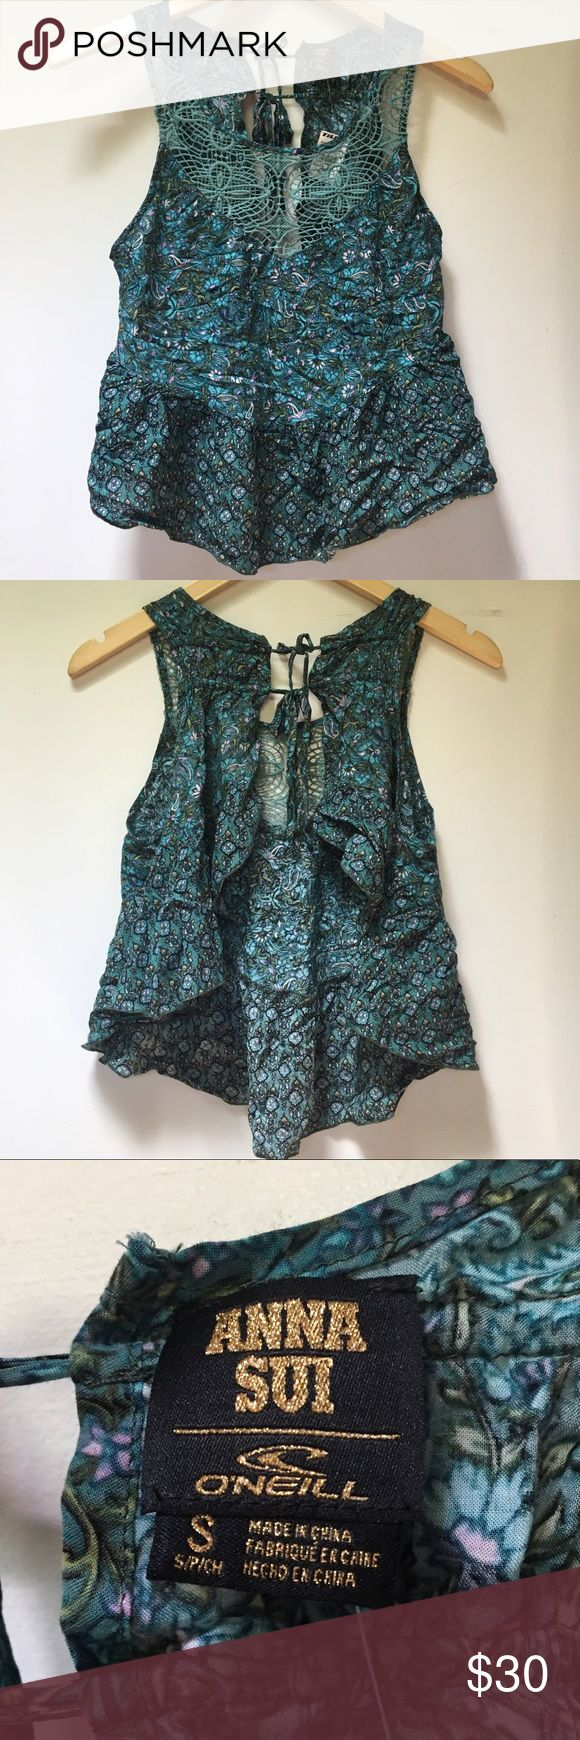 Anna Sui for O'Neill Floral And Crochet Top Anna Sui for O'Neill Floral And Crochet Top. Size small. Very cute! Has an open back. Very flowy. Anna Sui Tops